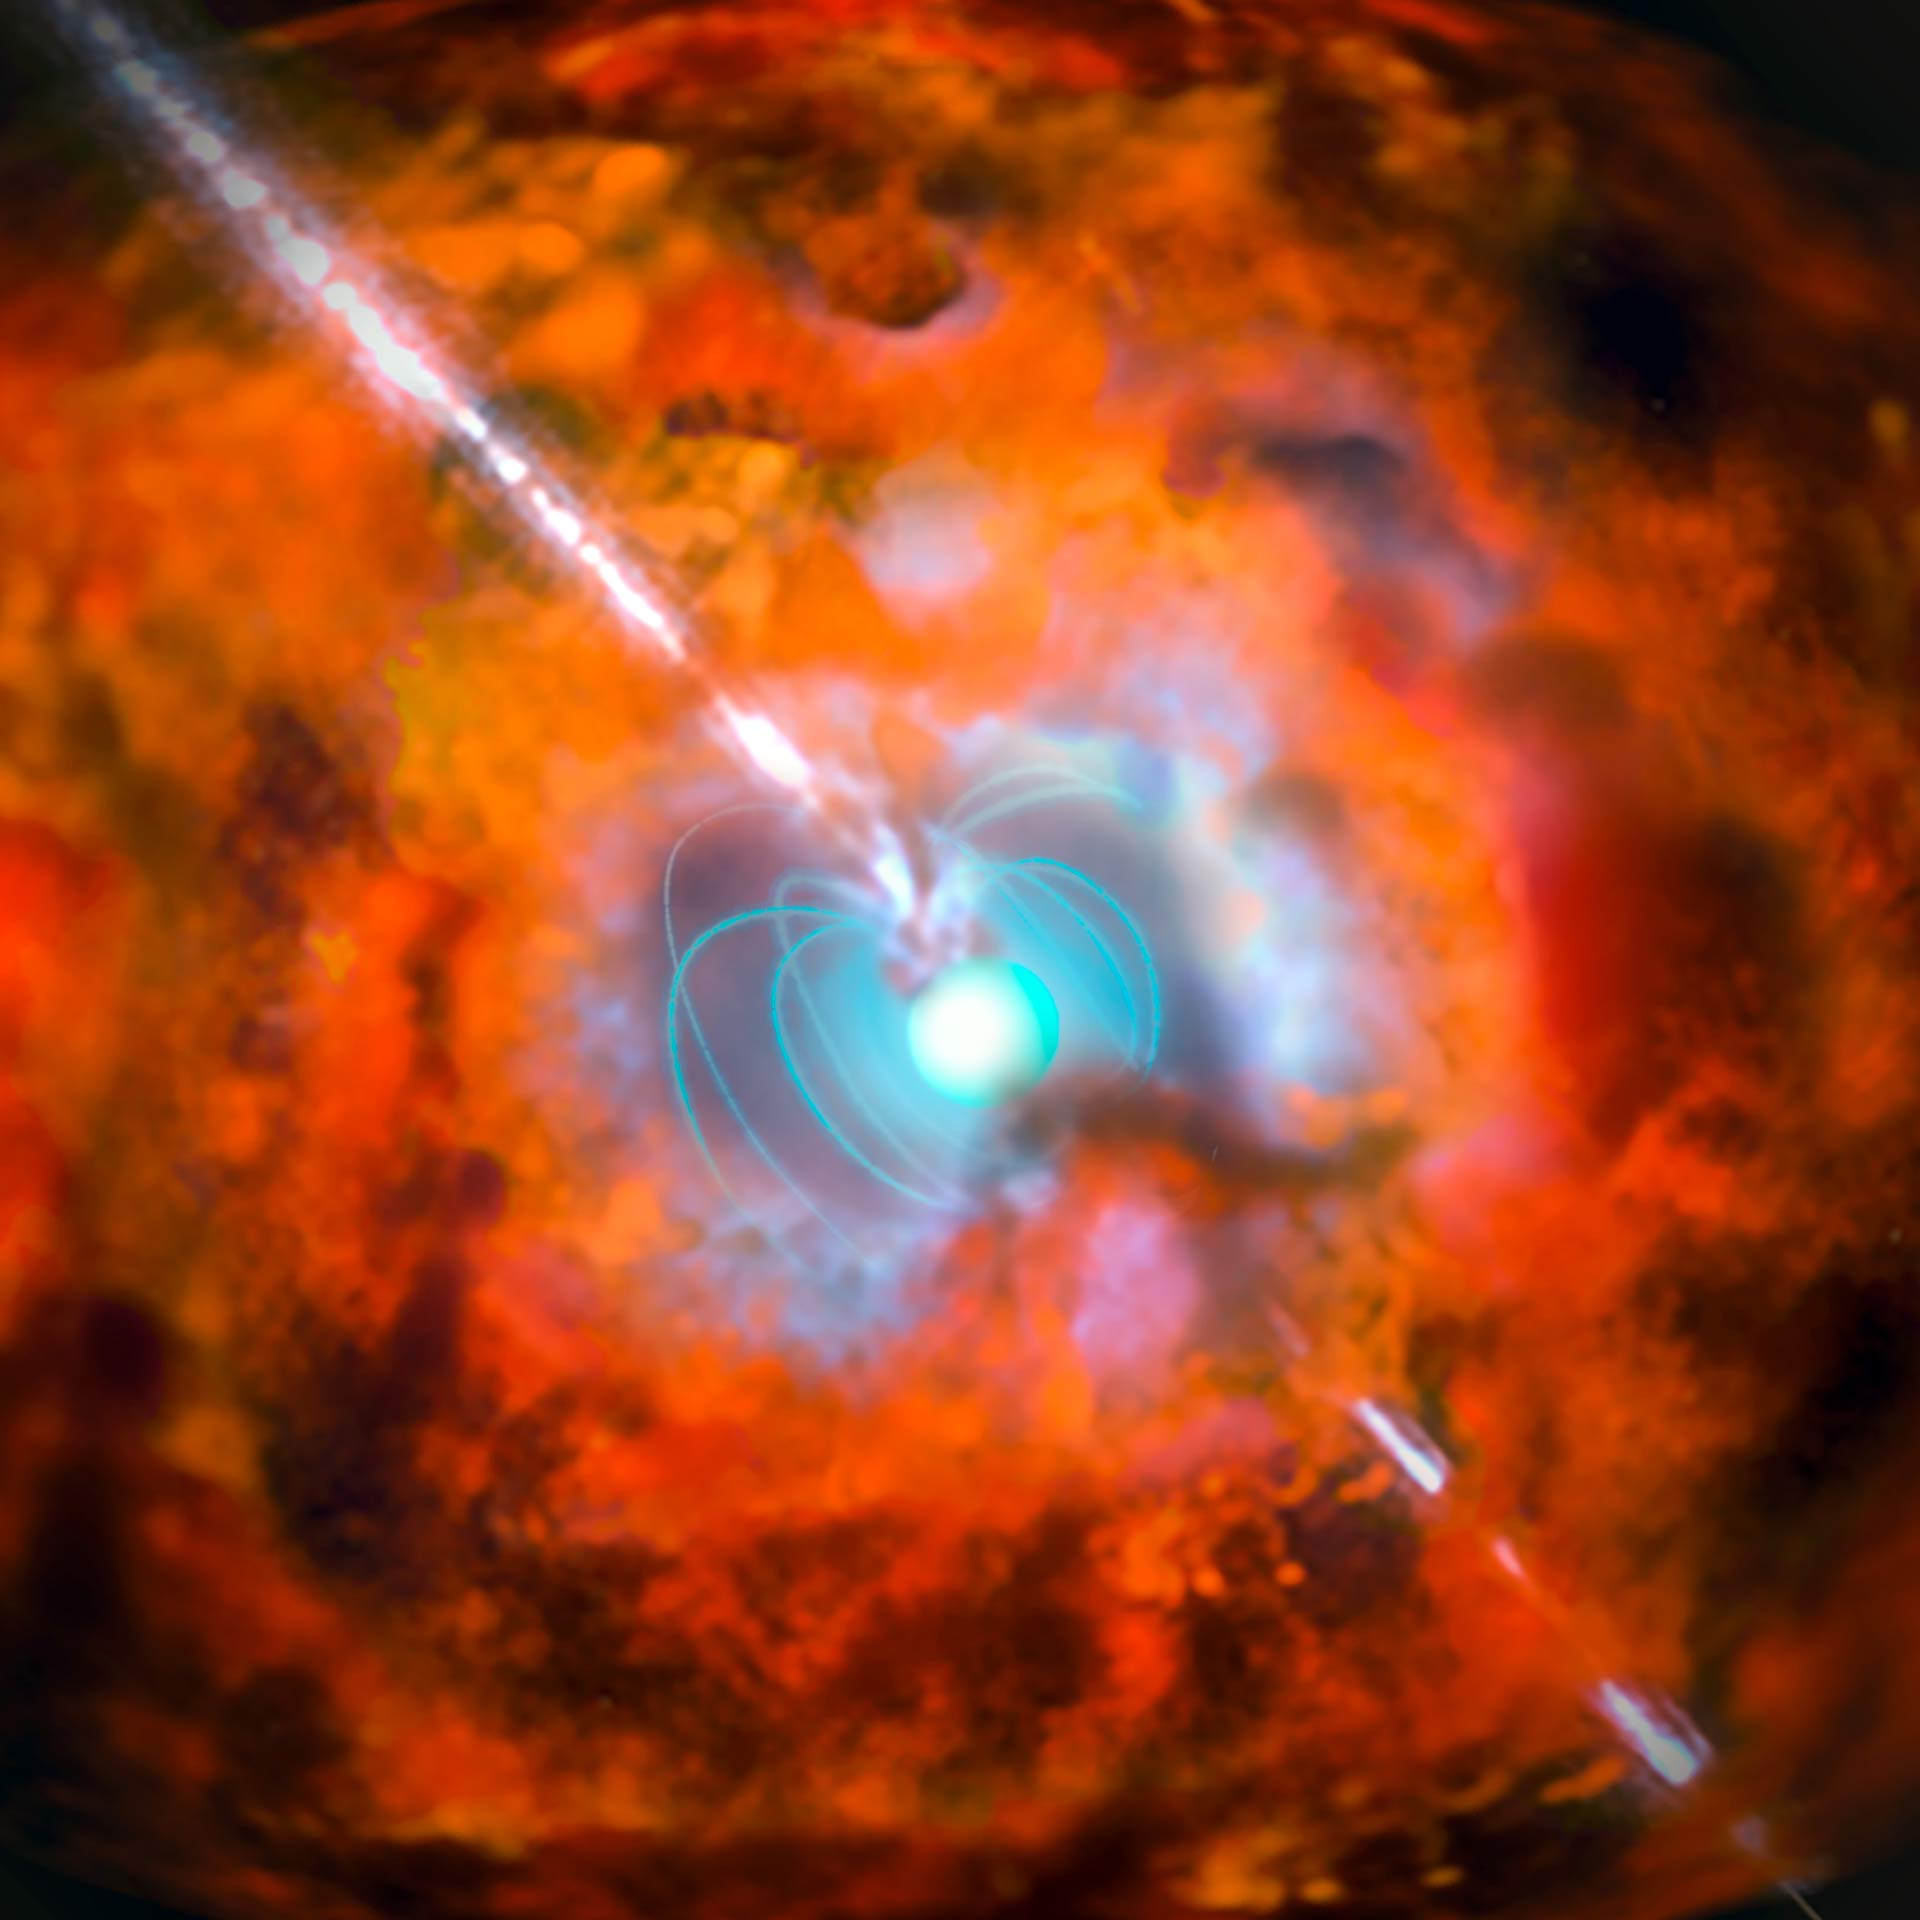 Artist's impression of a supernova and associated gamma-ray burst driven by rapidly spinning magnetar, a neutron star with a very strong magnetic field. Credit: ESO - http://www.eso.org/public/images/eso1527a/